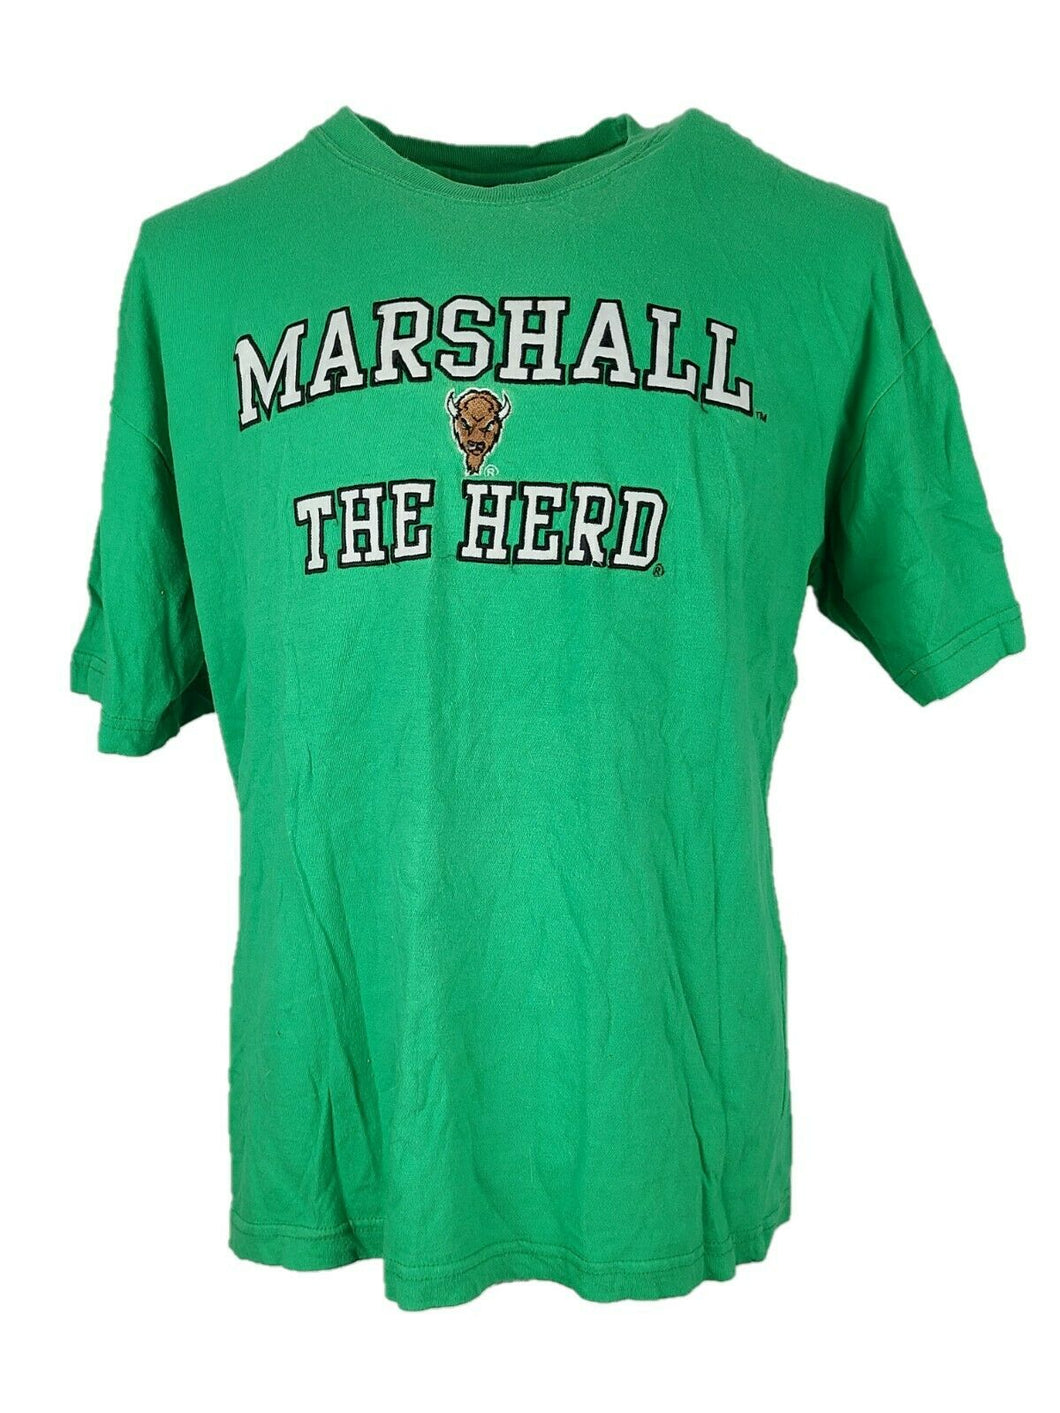 Men's Marshall The Herd Short Sleeve Shirt Size Xl Color Green Crew Neck